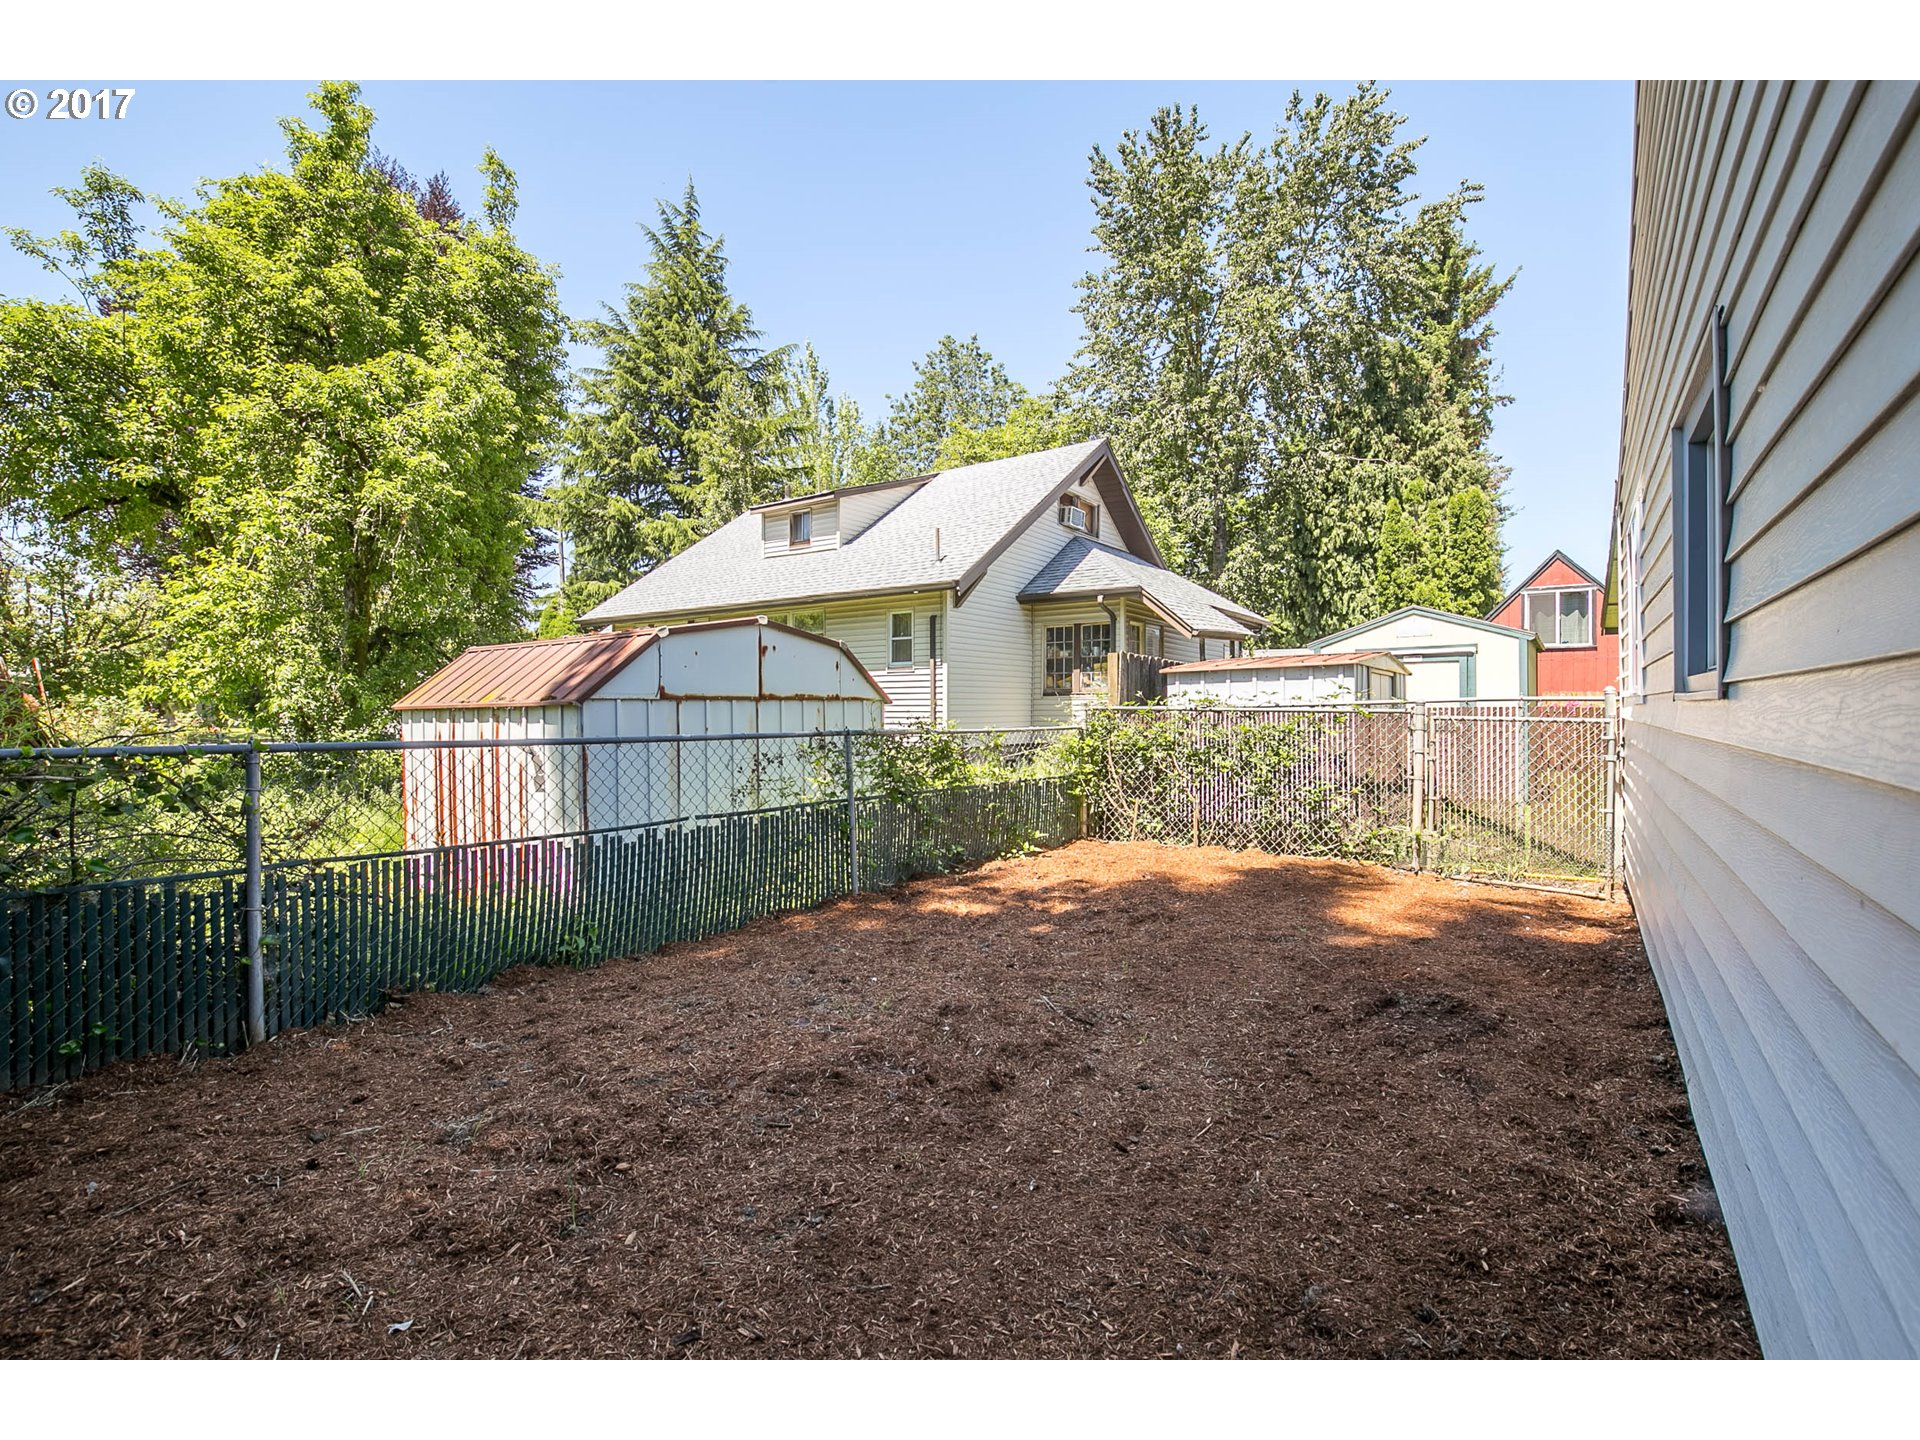 4735 NE 105TH AVE Portland, OR 97220 - MLS #: 17496782